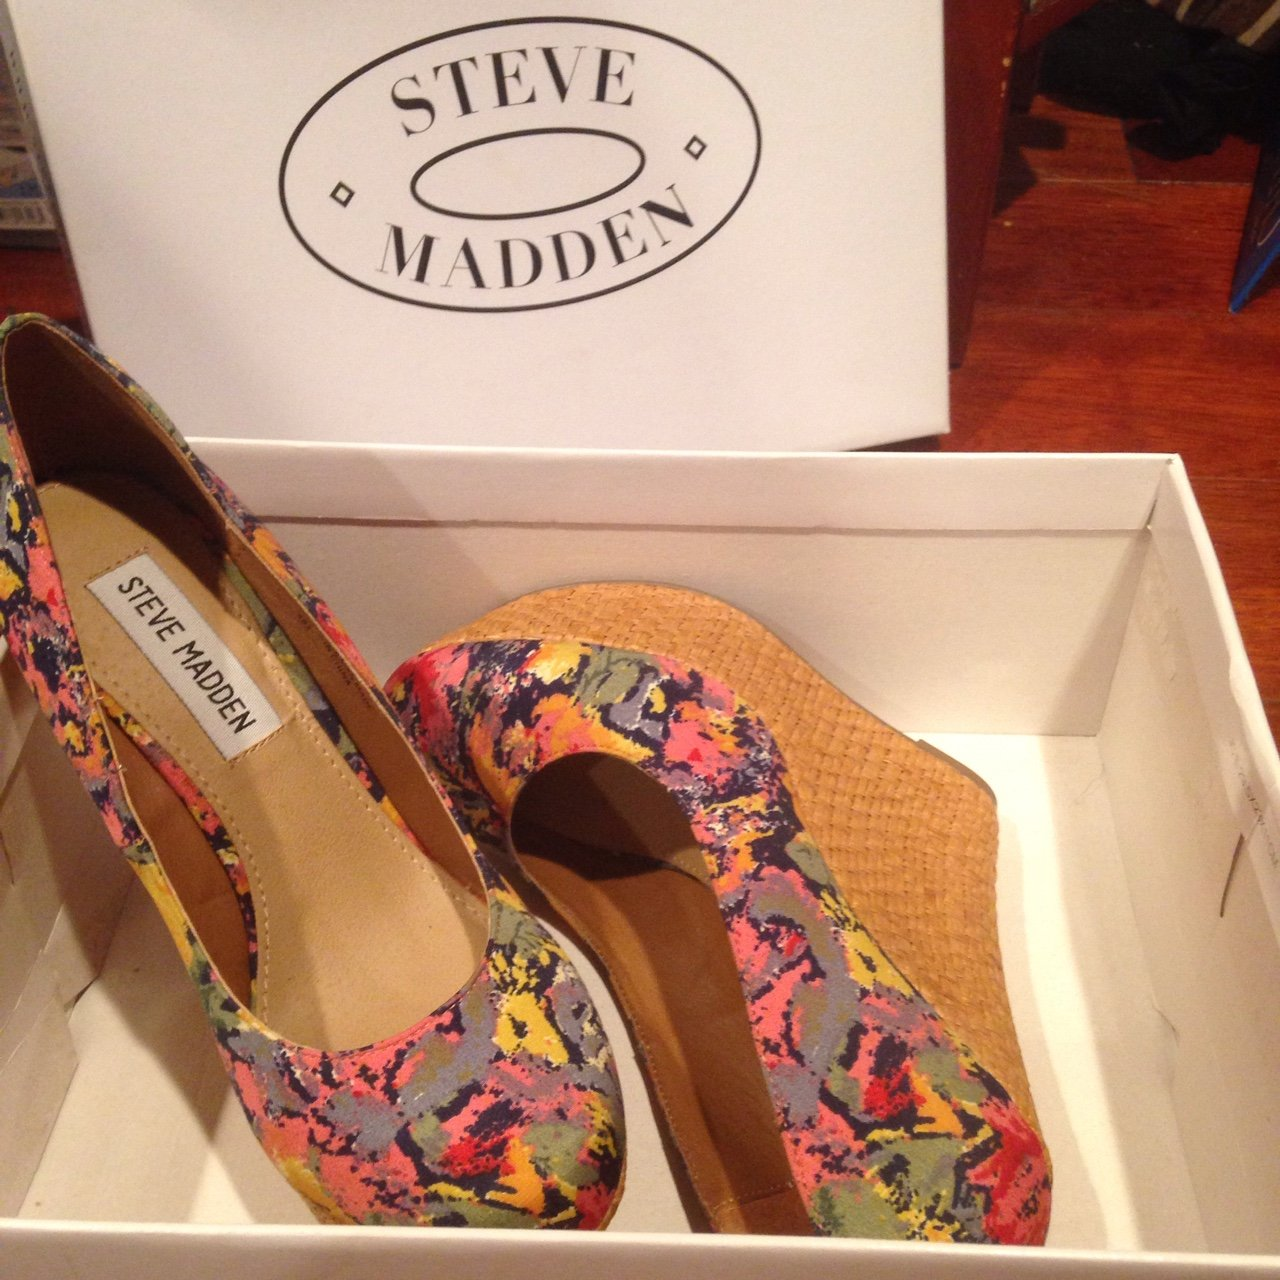 631b7872052 Steve Madden Floral wedges size 6 or may fit a size 5.5. 🍥 - Depop